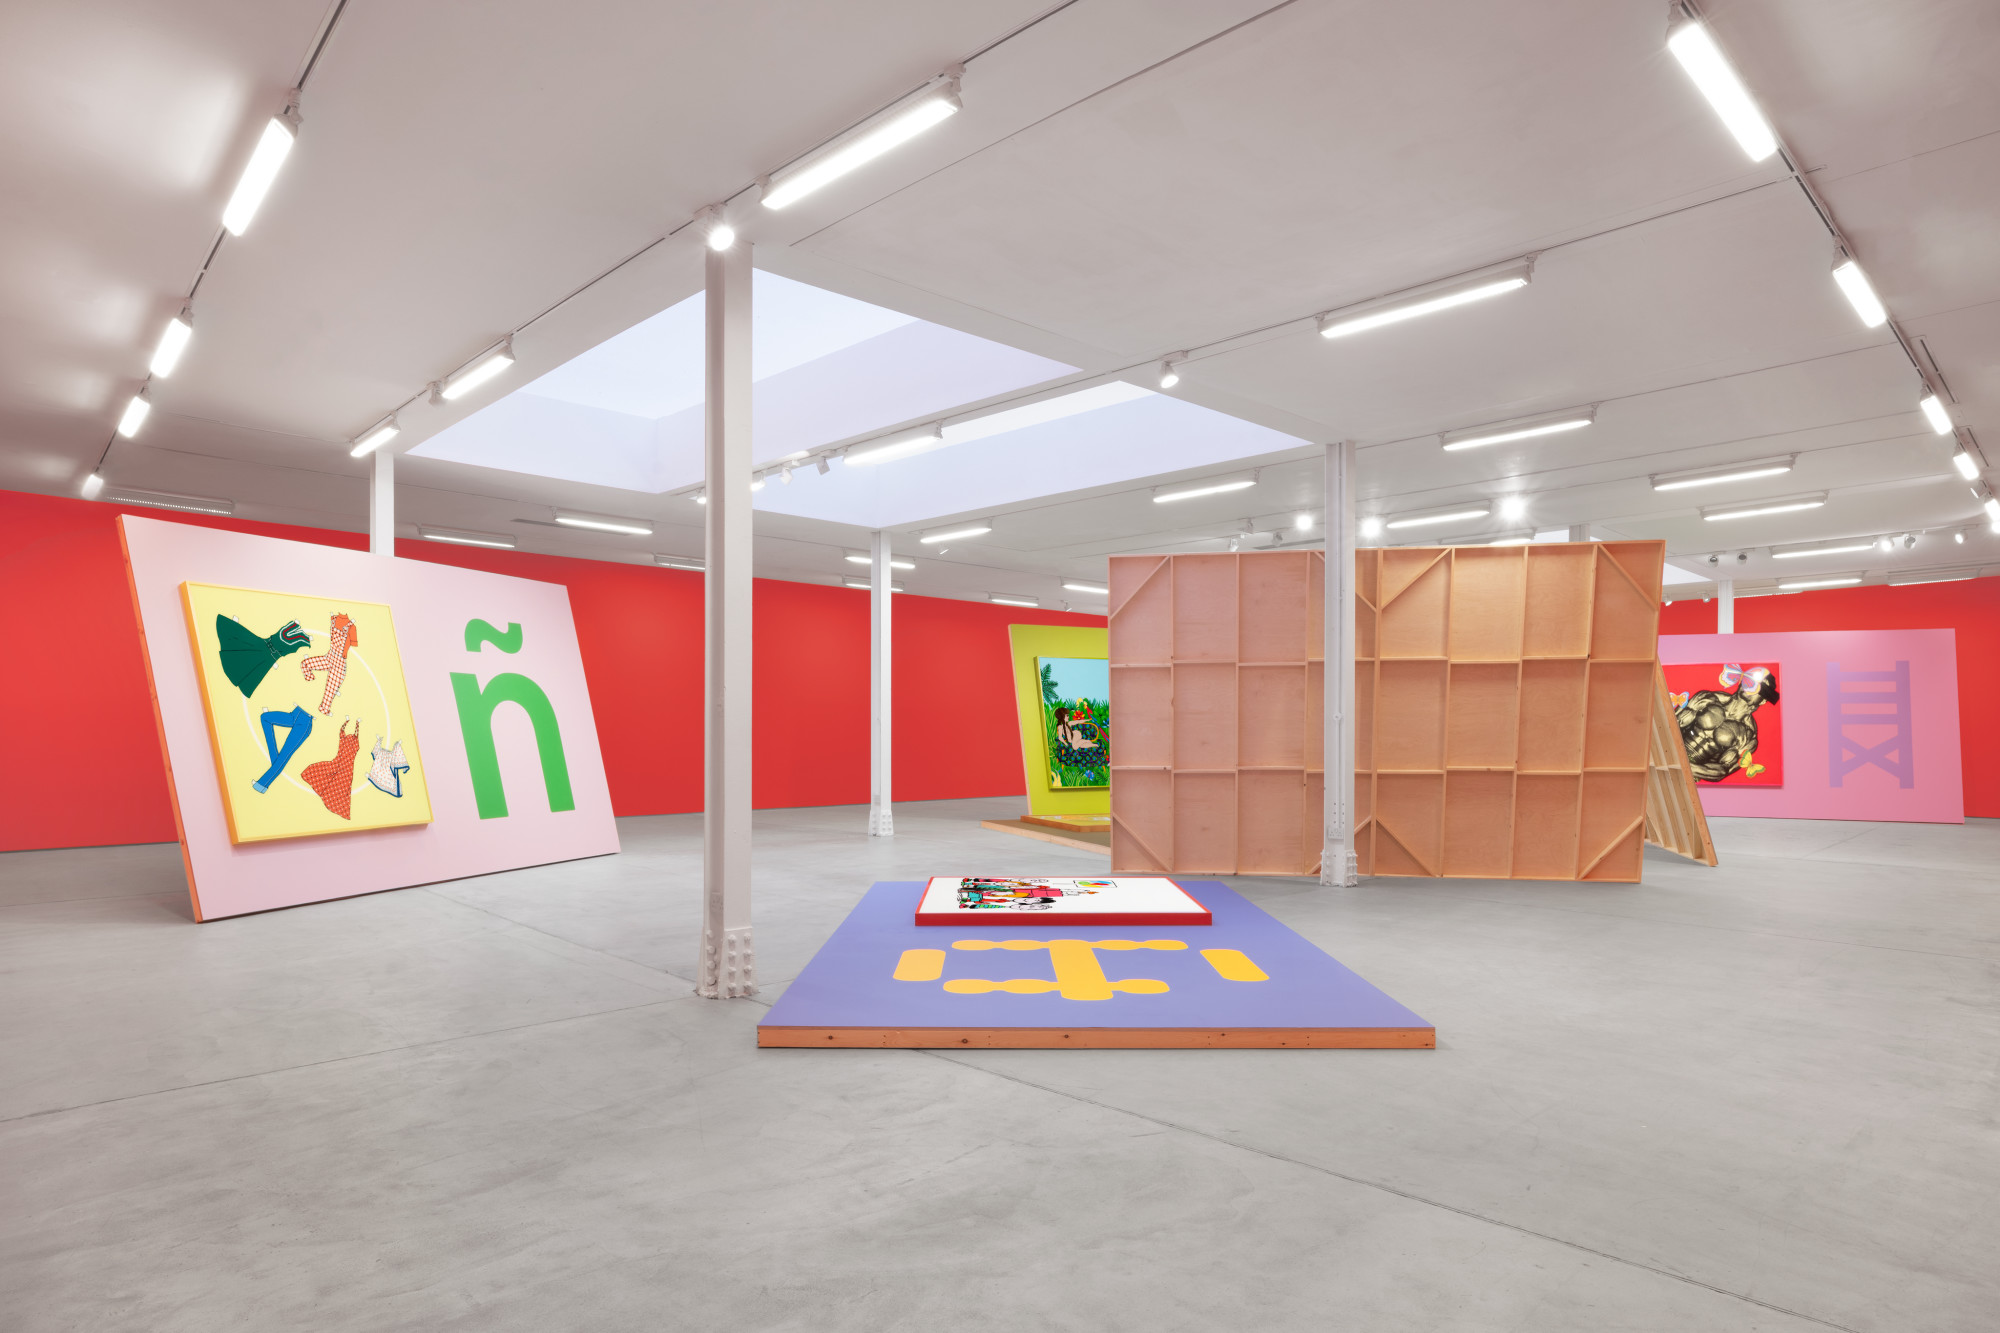 "<div class=""artwork_caption""><p>Installation view, Alex Da Corte, Sadie Coles HQ, 62 Kingly Street W1, 31 October - 13th January 2020</p><p>Photography by Eva Herzog</p></div>"